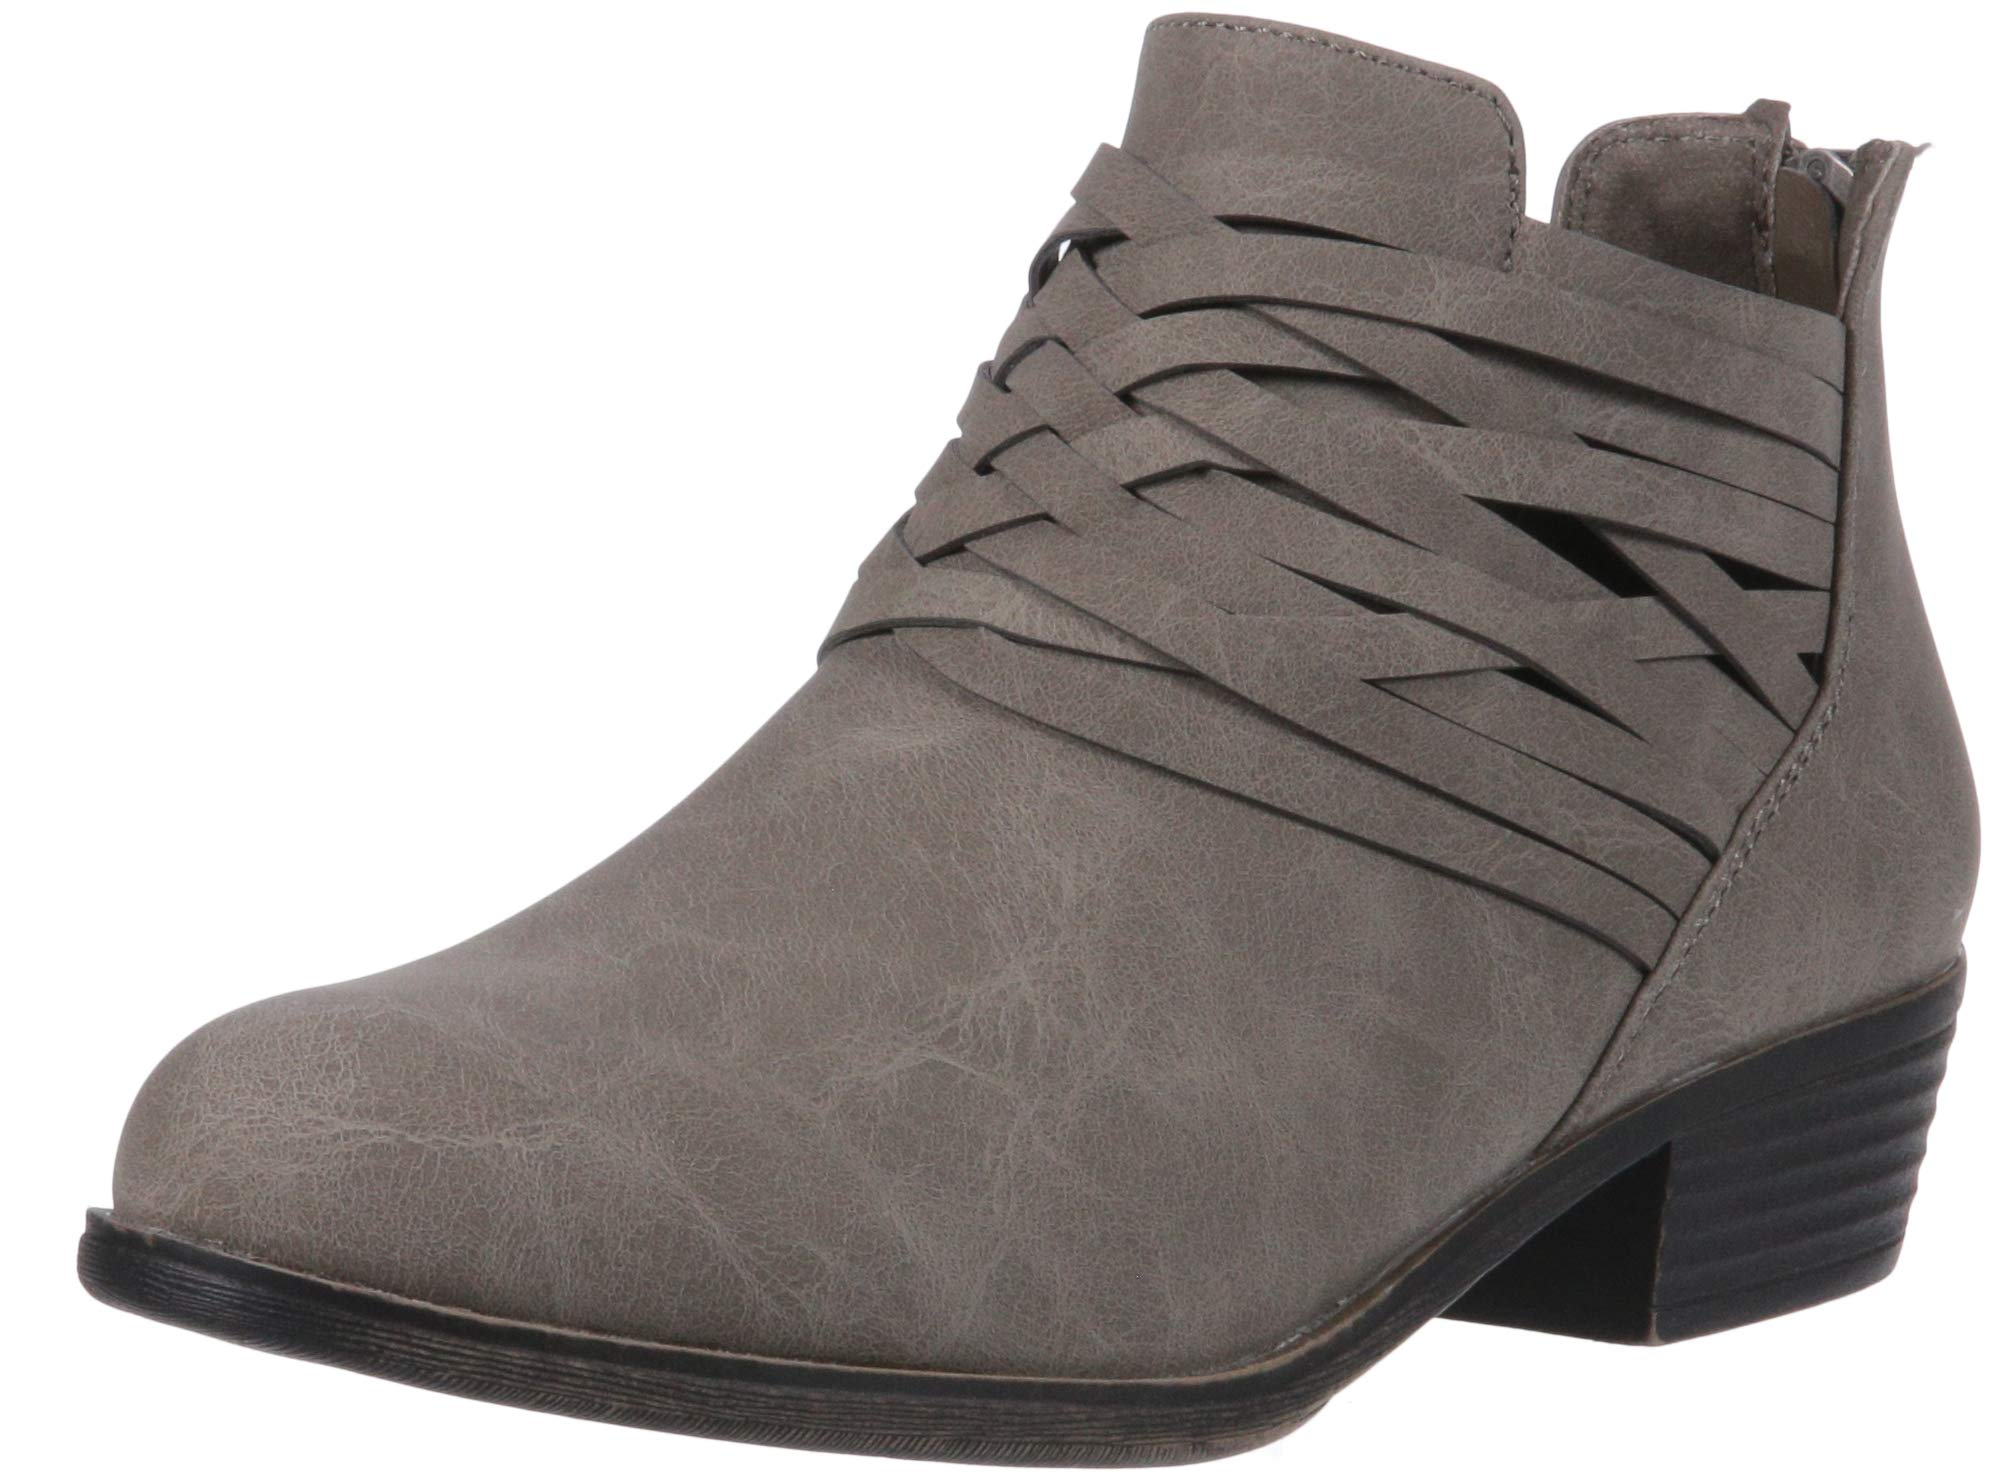 Sugar Women's Rhett Casual Boho Short Bootie with Criss Cross Straps Ankle Boot, Grey Distressed, 9 Medium US by Sugar (Image #1)